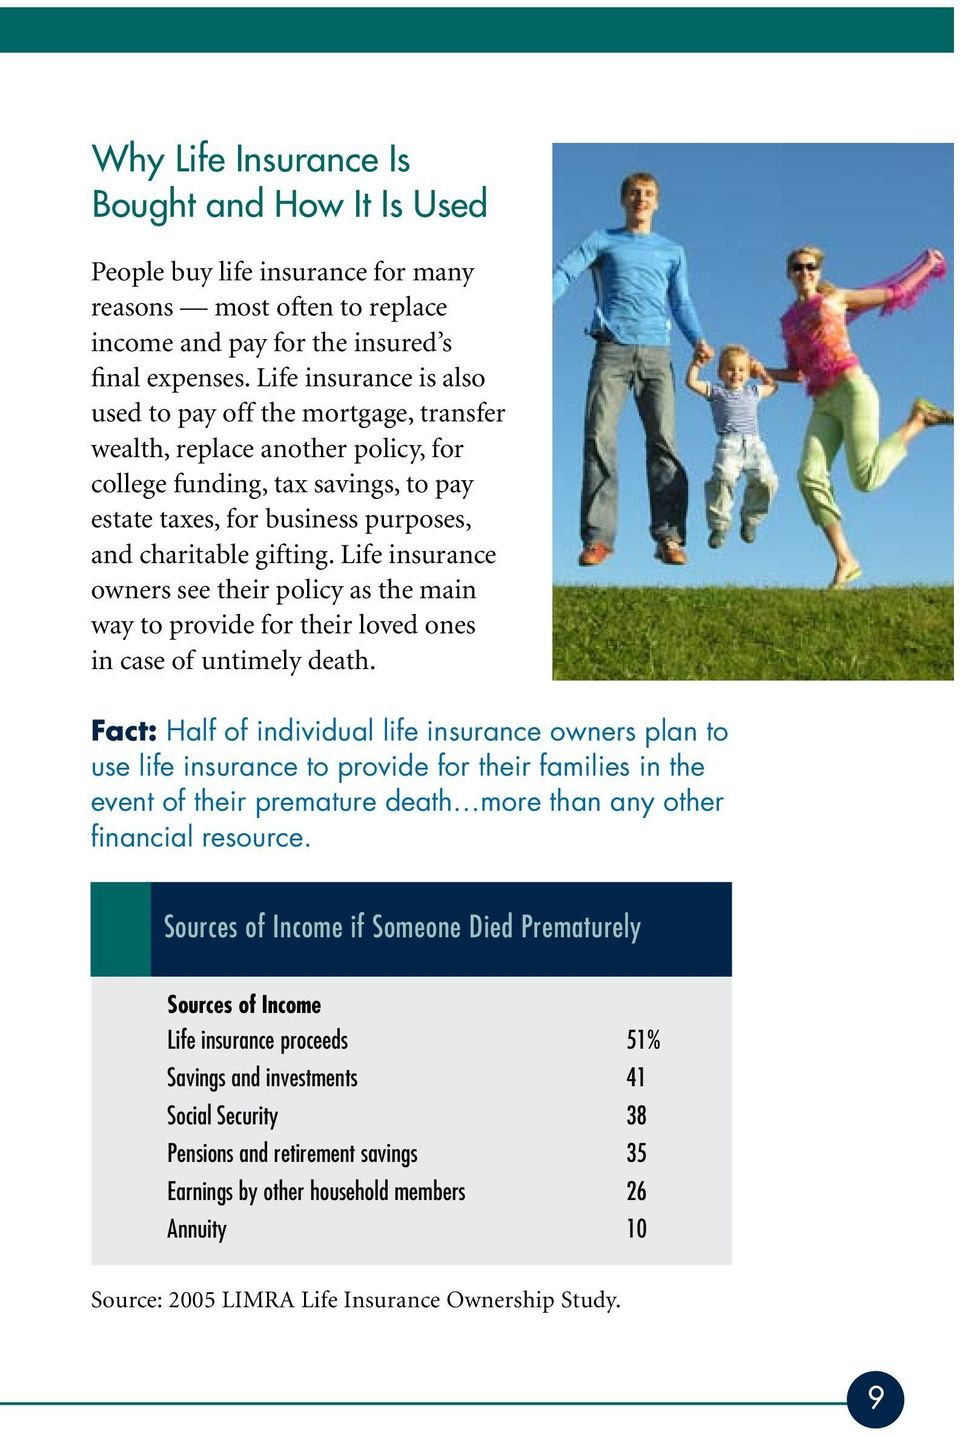 Life insurance owners see their policy as the main way to provide for their loved ones in case of untimely death.